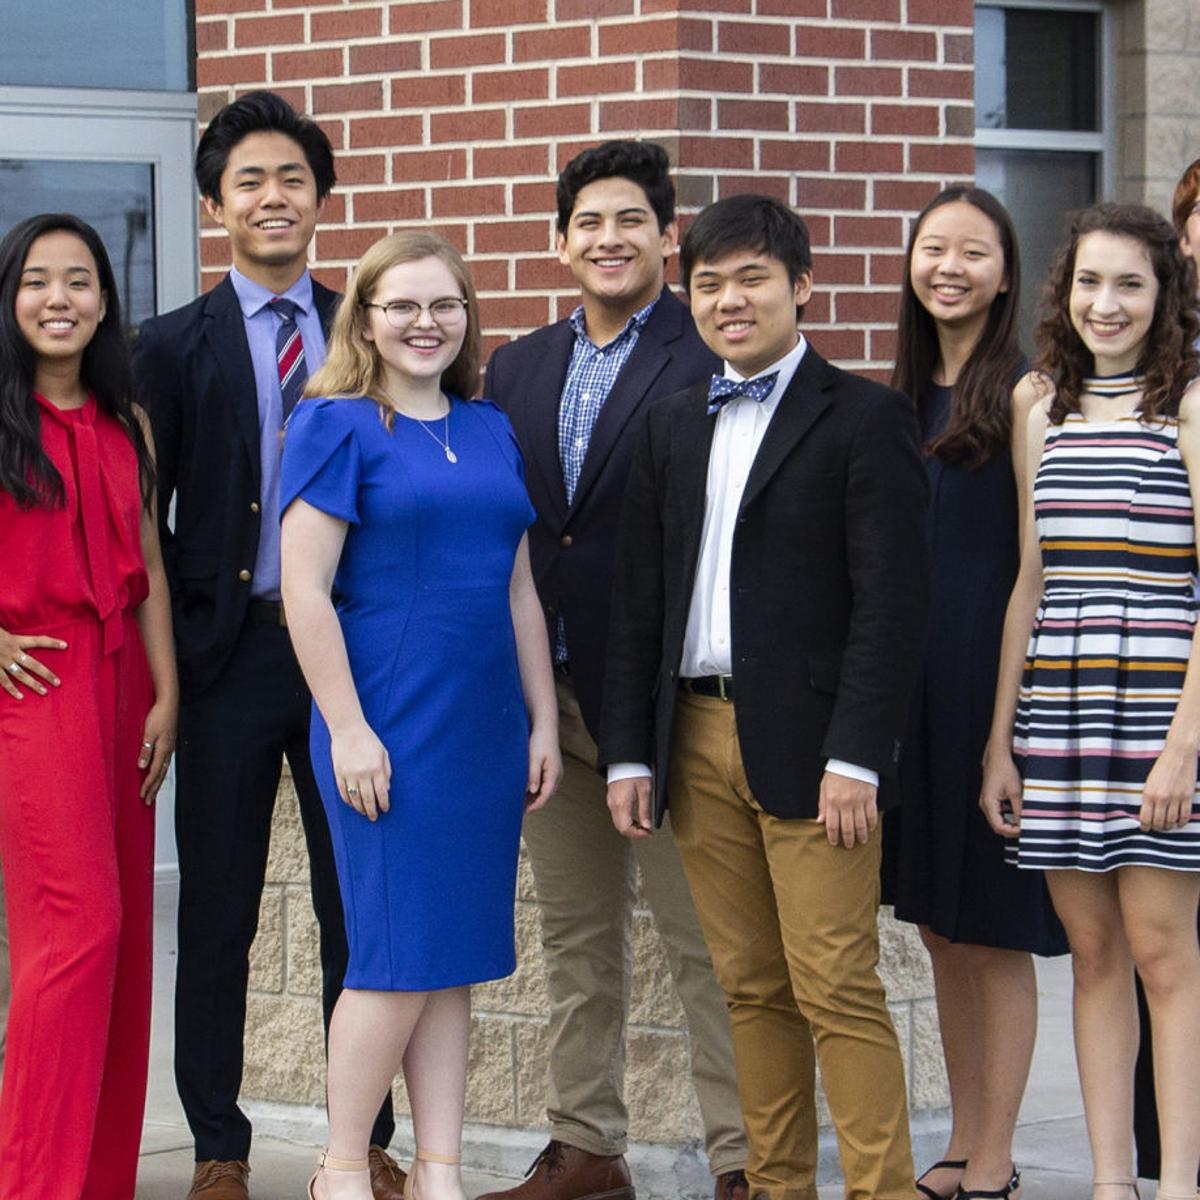 Midway has 12 students with National Merit recognition